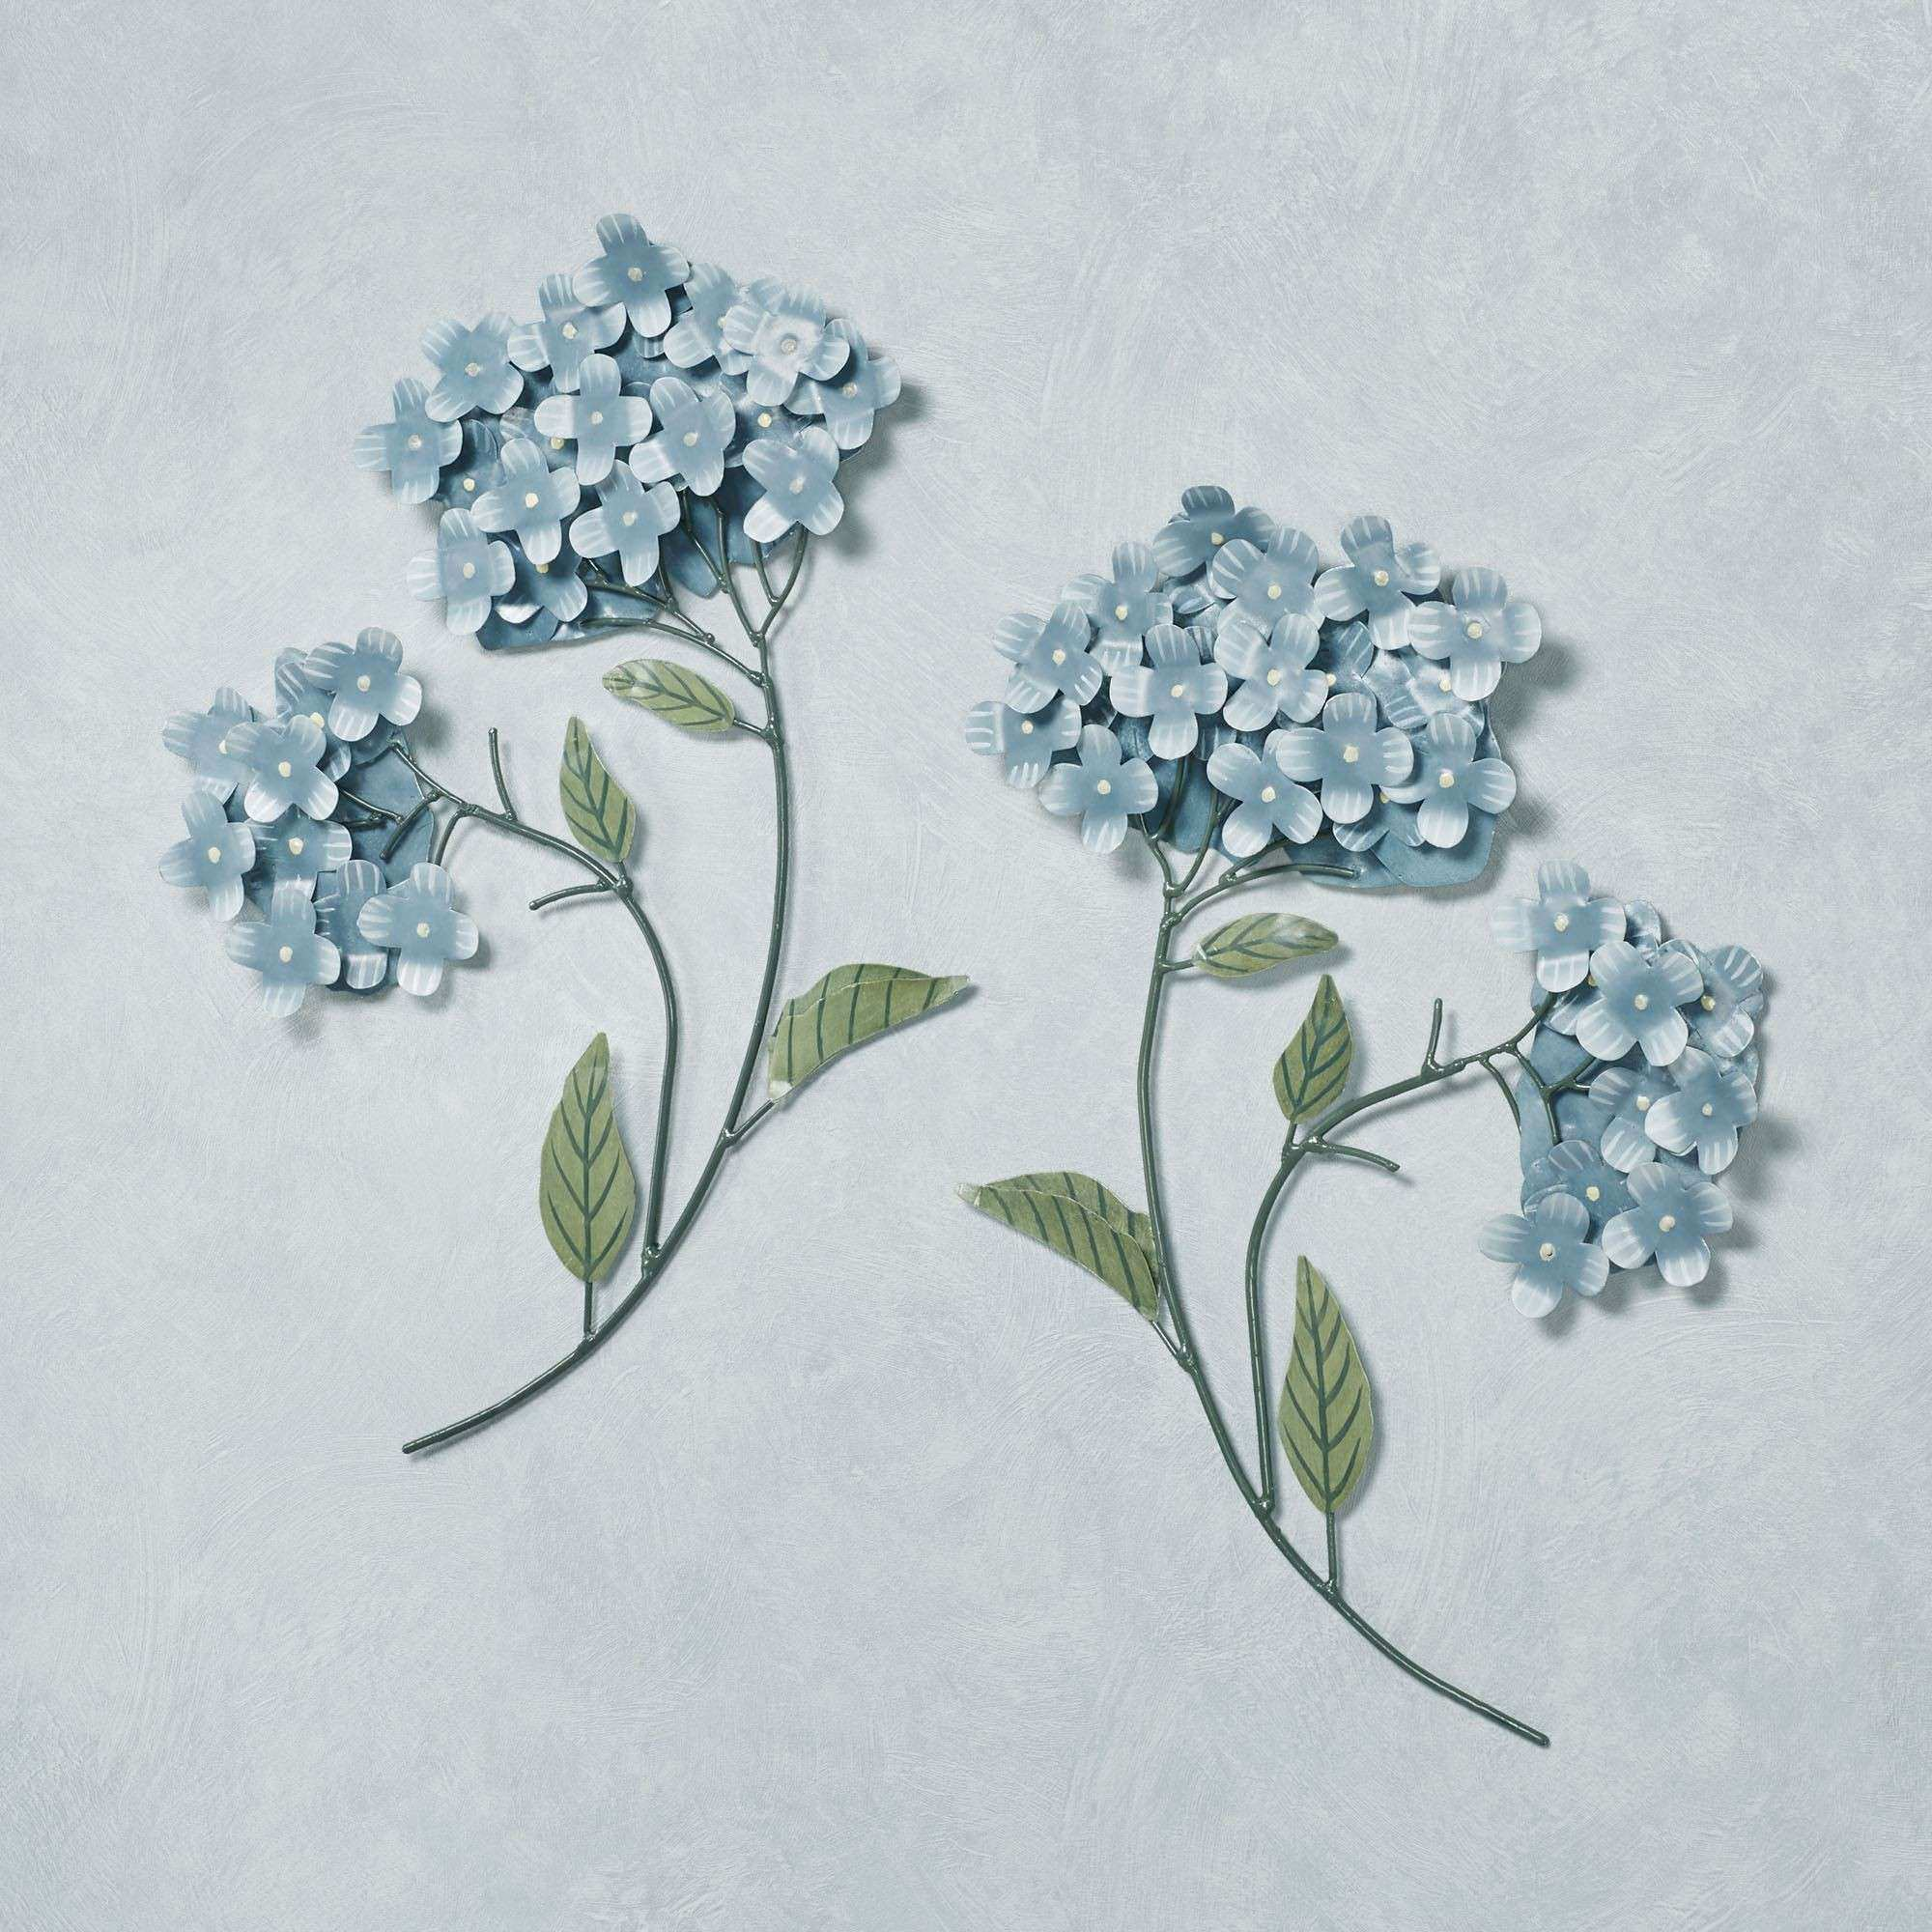 Floral Metal Wall Decor Inspirational Blue Hydrangea Floral Metal Wall Sculpture Set